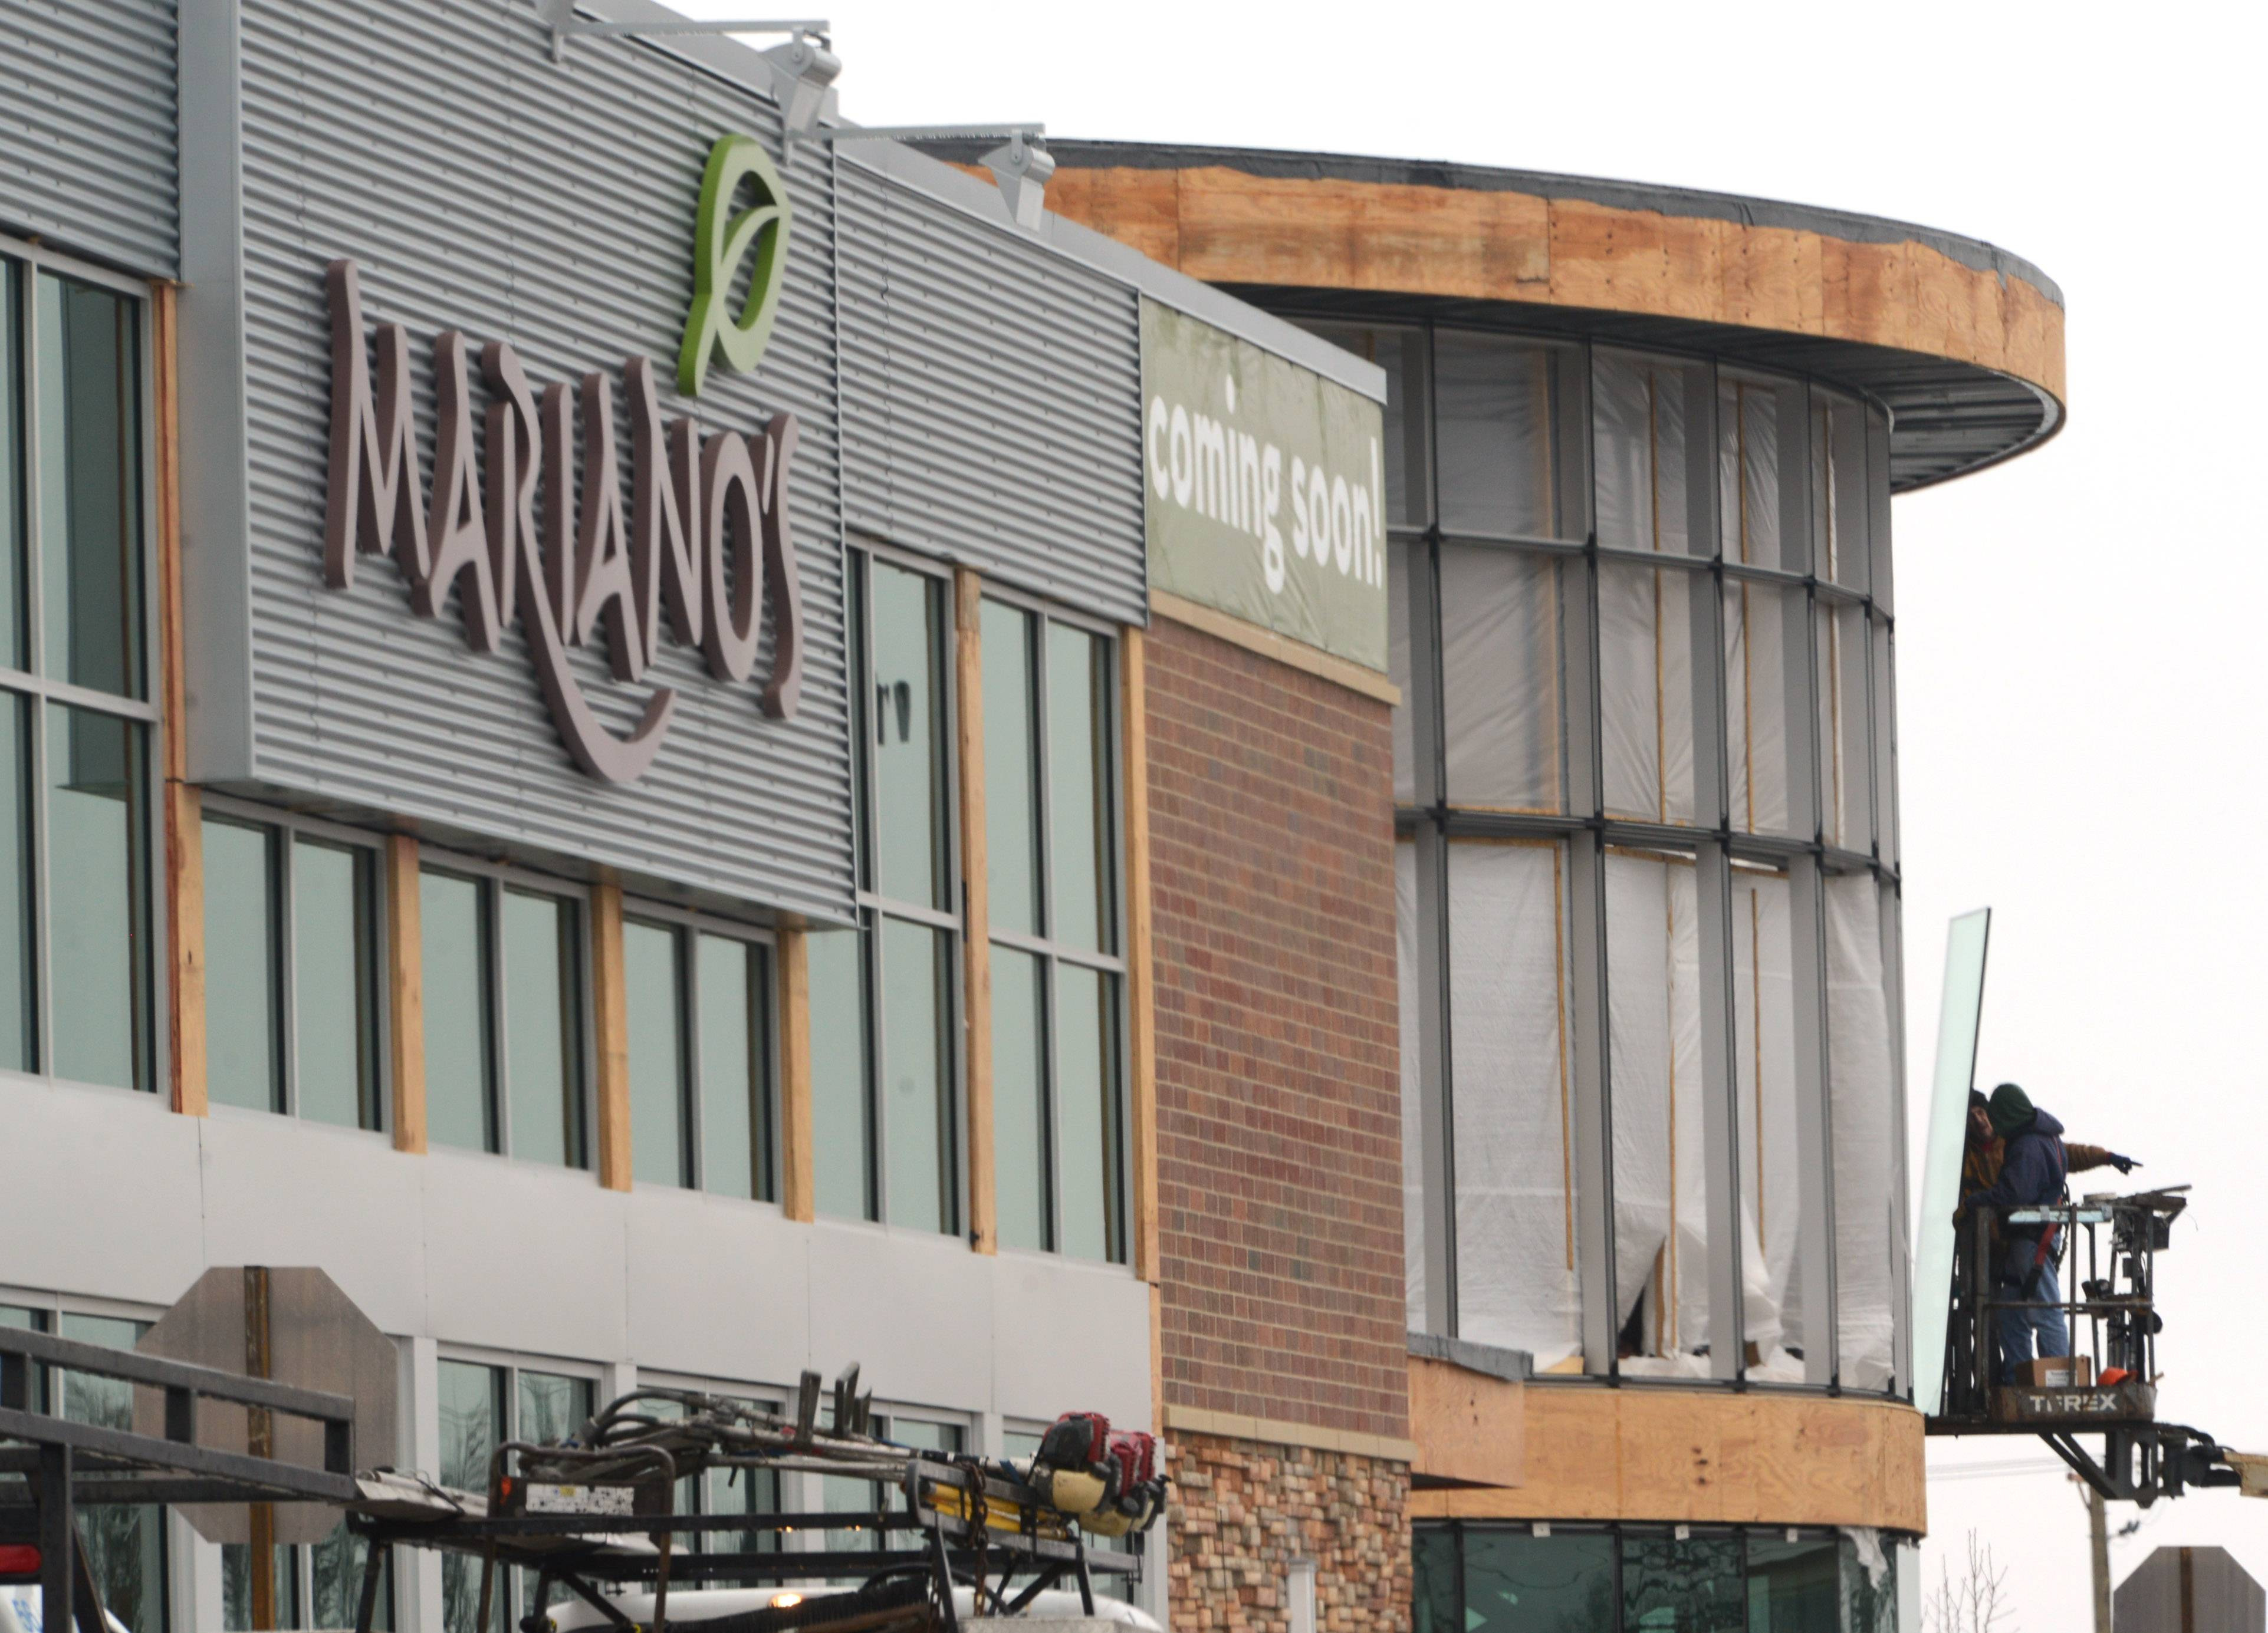 A Mariano's grocery will replace the Sears store in Crystal Lake. The grocery chain plans to knock down existing building and begin construction this spring. The new Mariano's will have a glass rotunda housing a cafe, similar to this store in Lake Zurich.